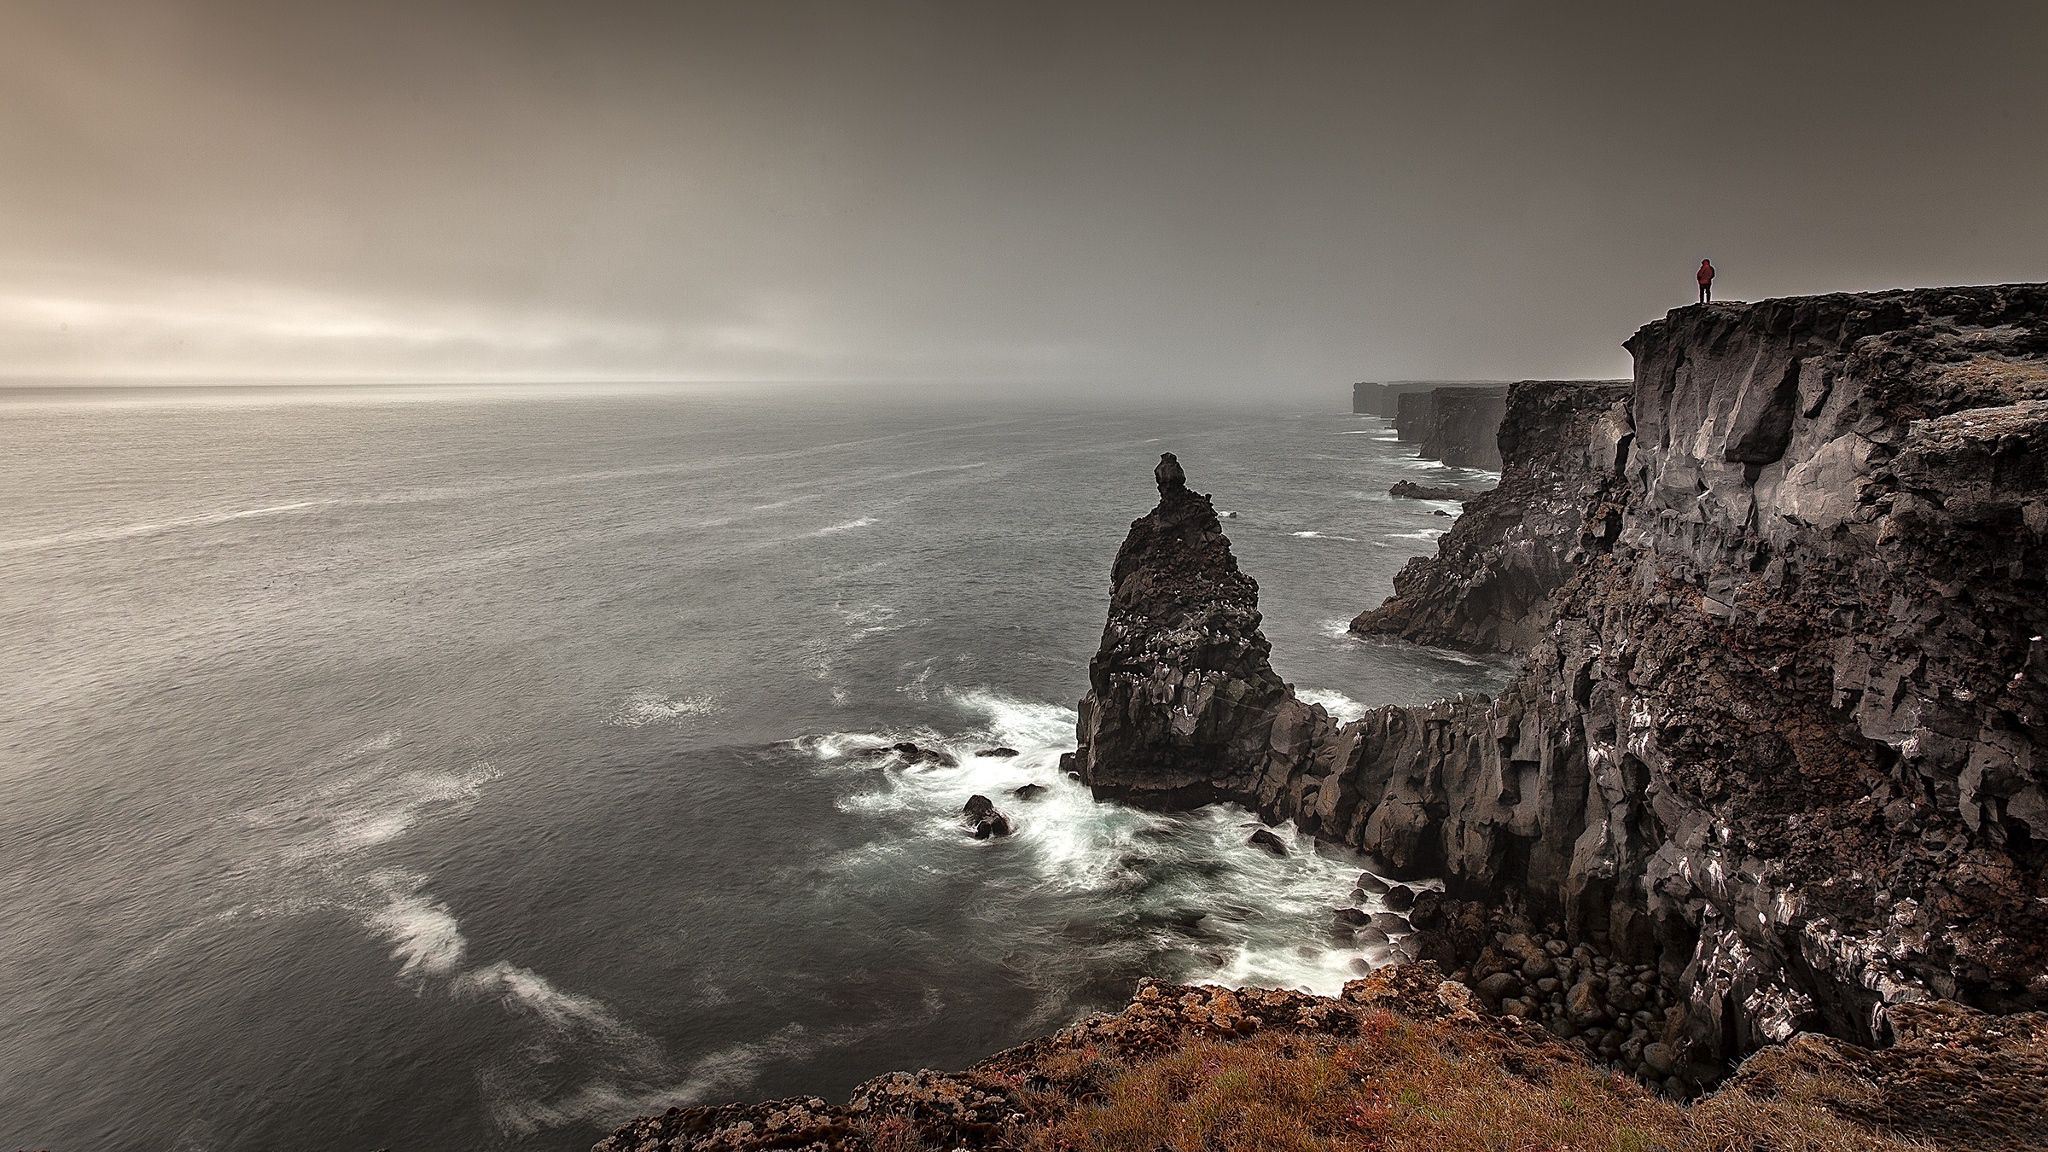 80833 download wallpaper Nature, Sea, Elevation, Stones, Rocks, Mountains screensavers and pictures for free